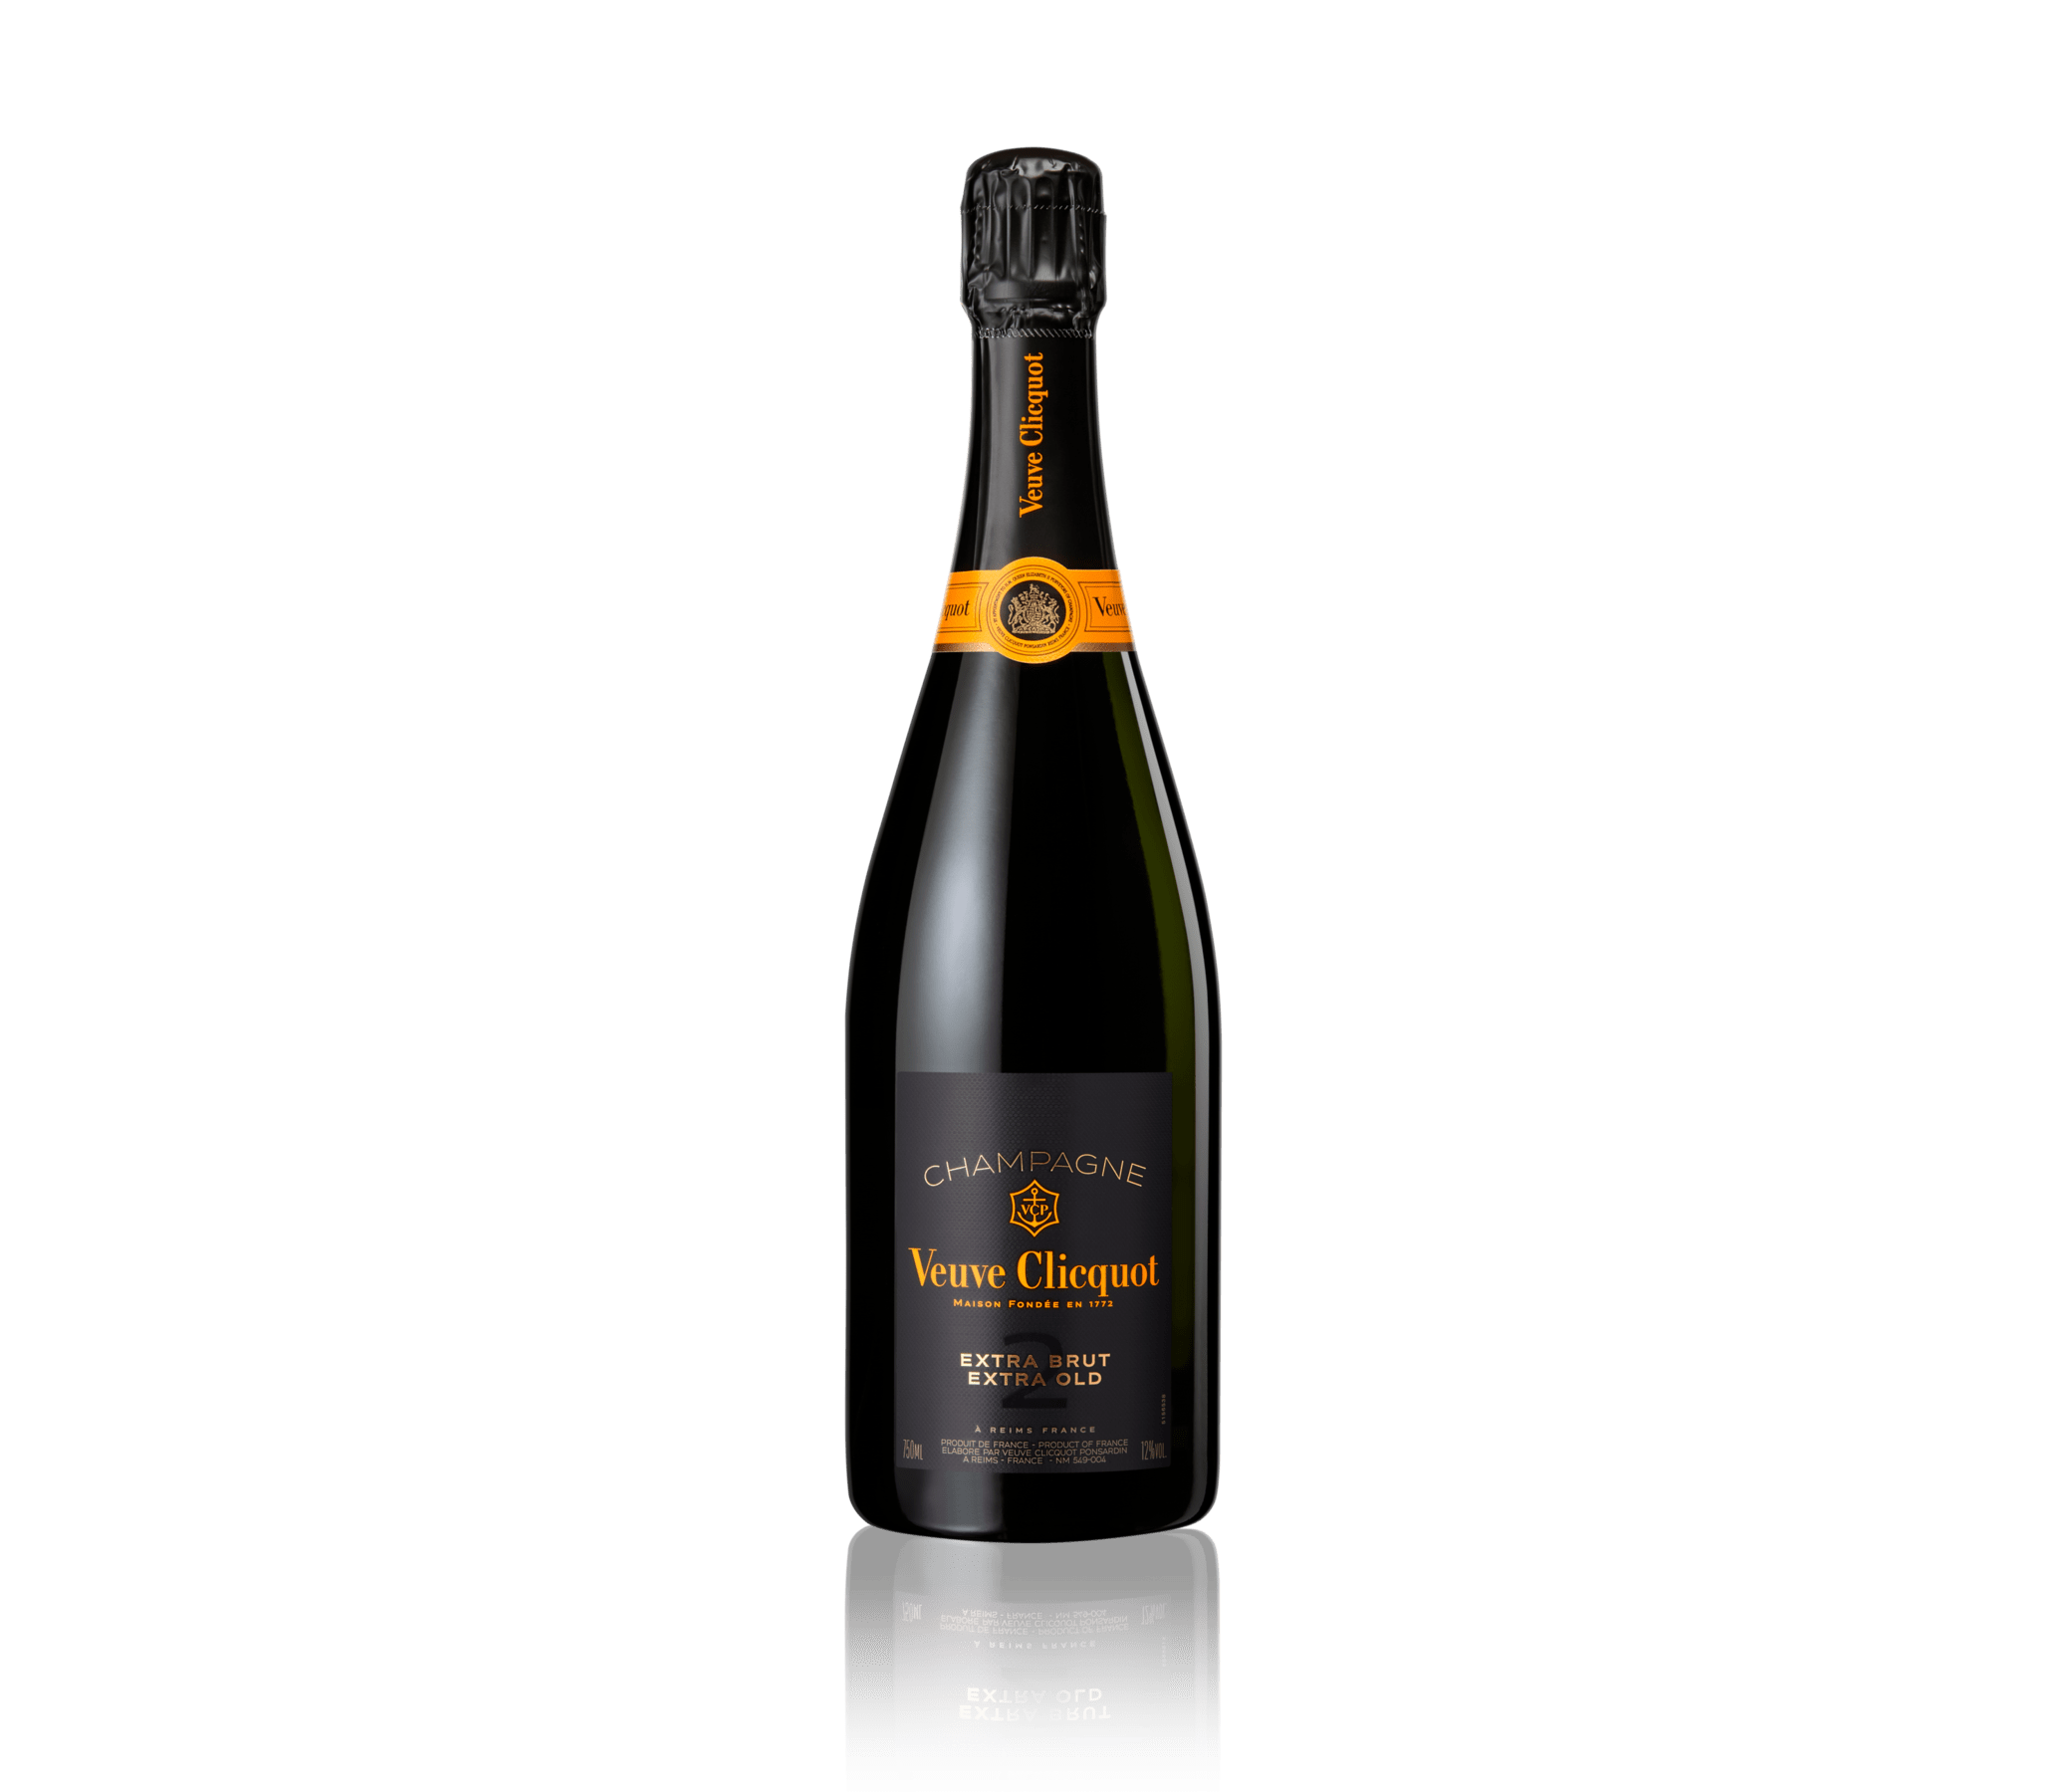 Bottle Veuve Clicquot Champagne Extra Brut Extra Old 2